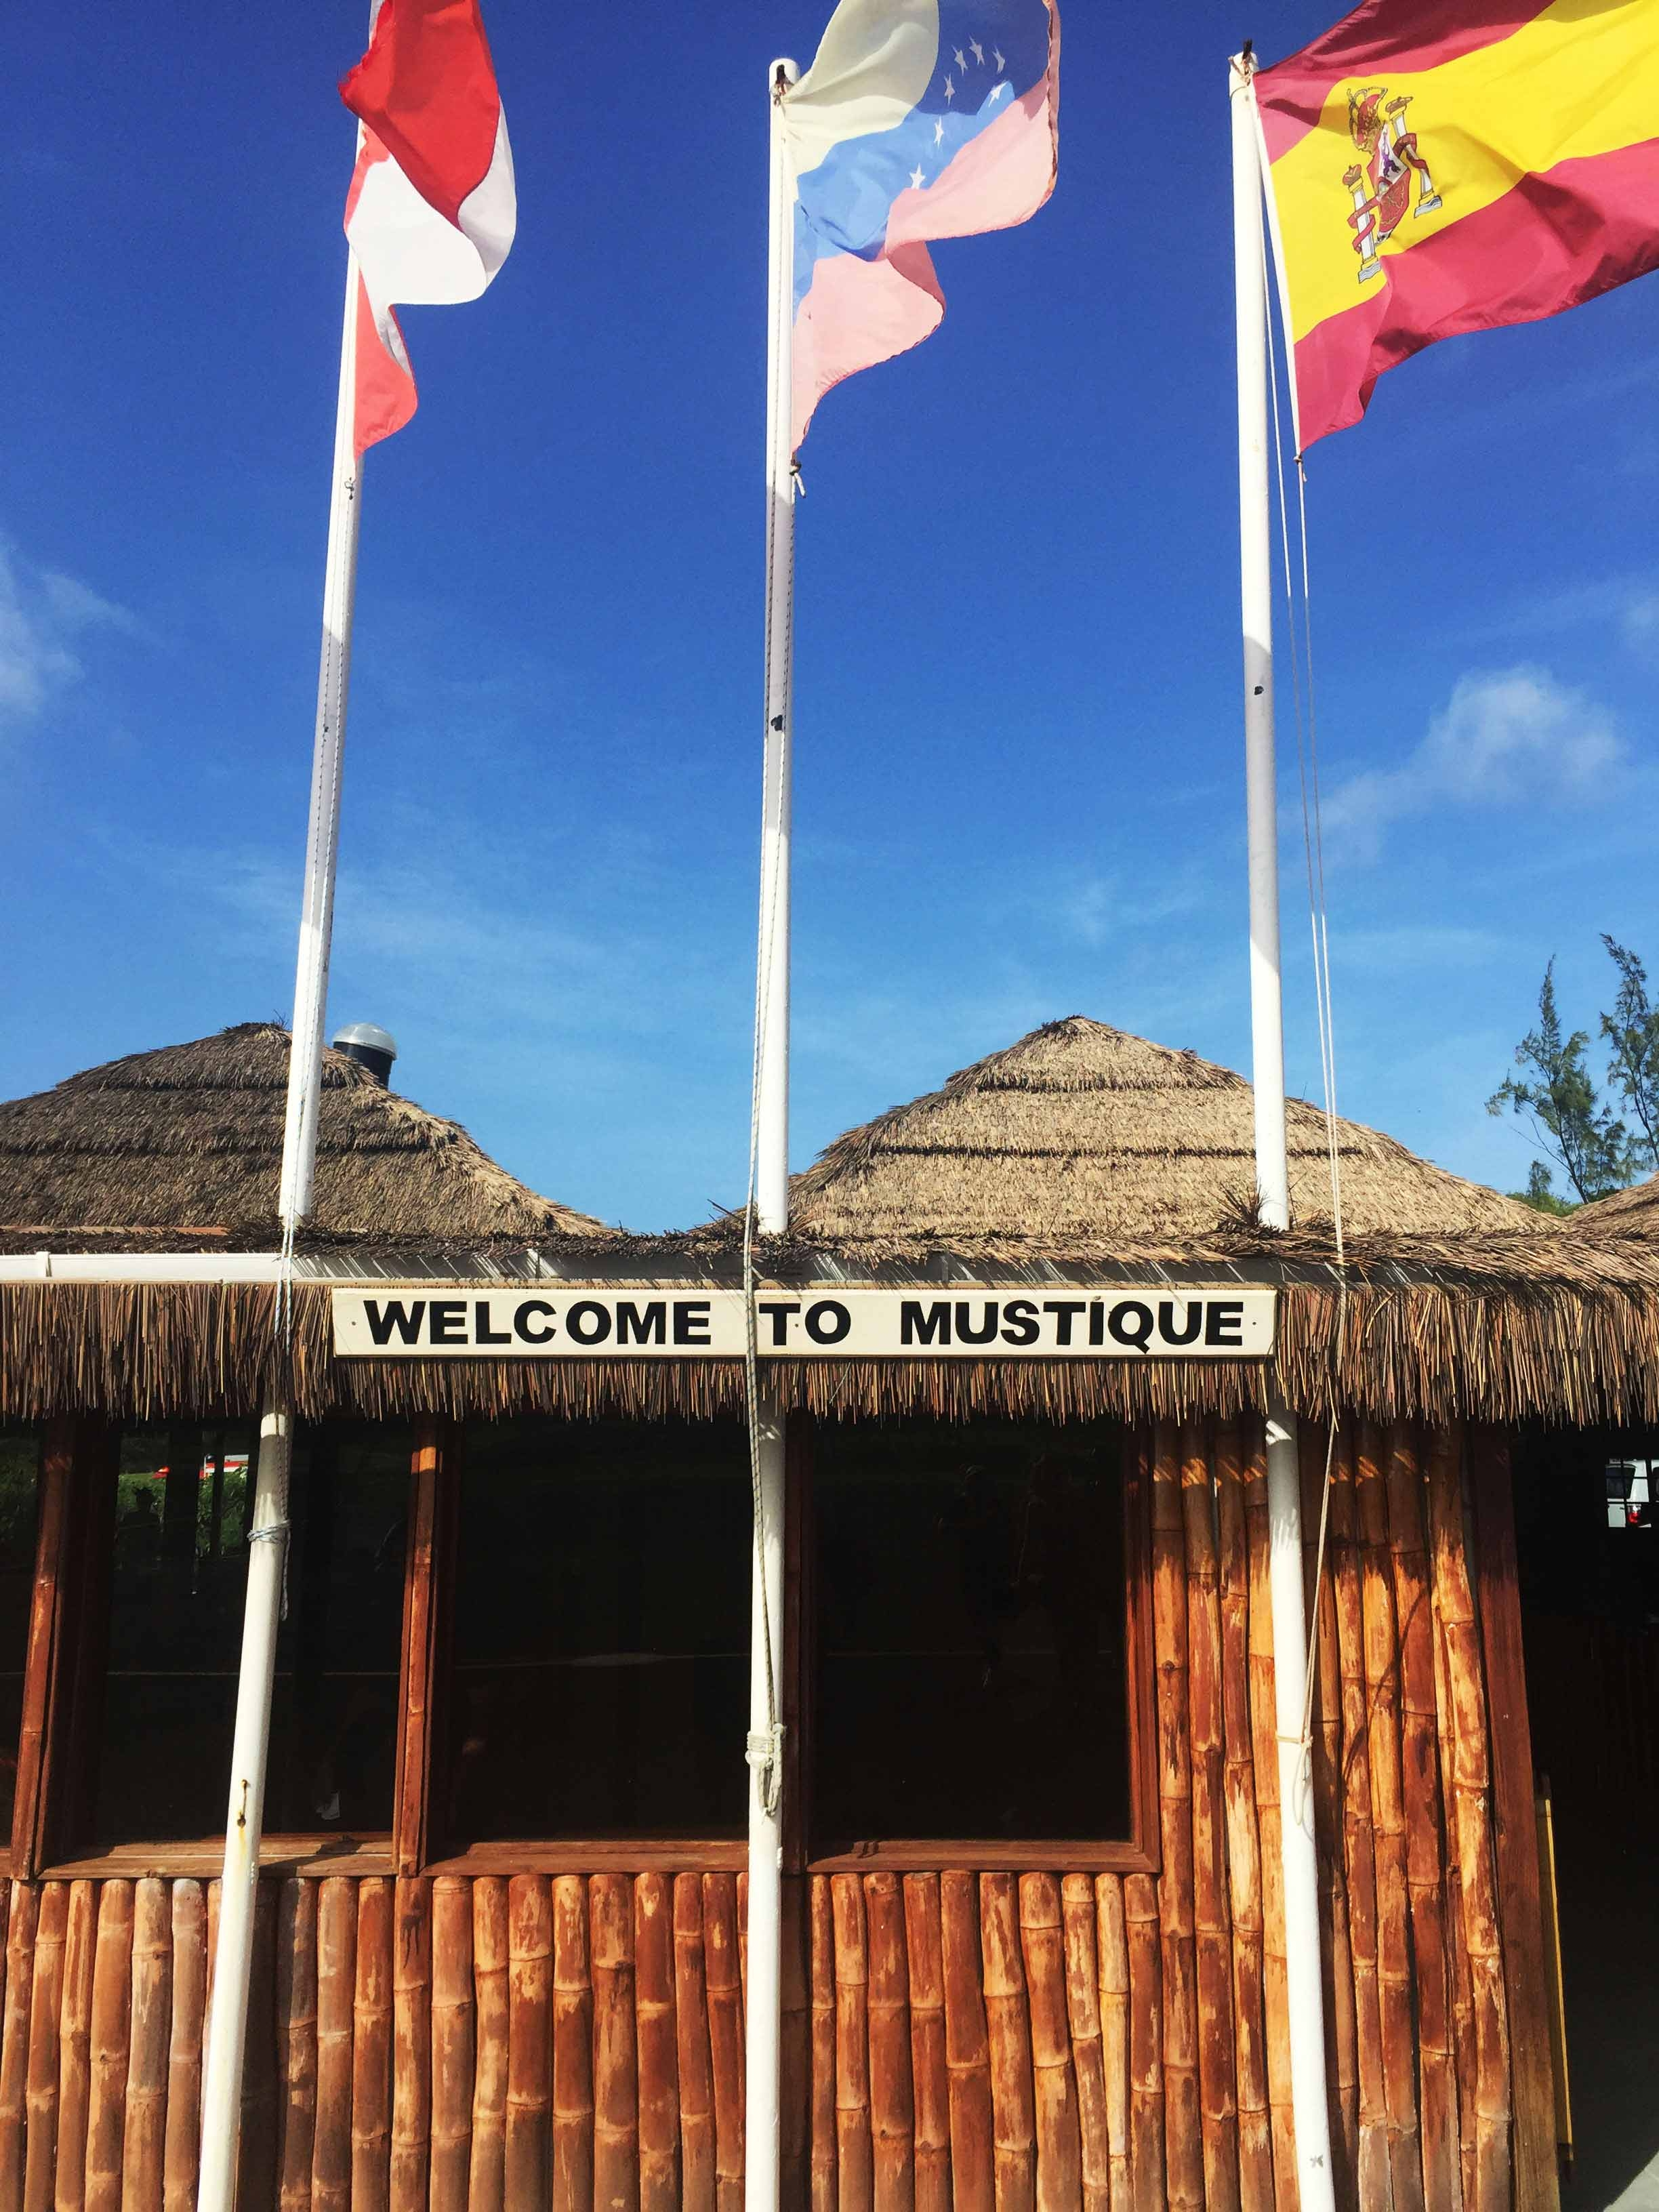 Mustique International Airport is a bamboo hut with three raised flags